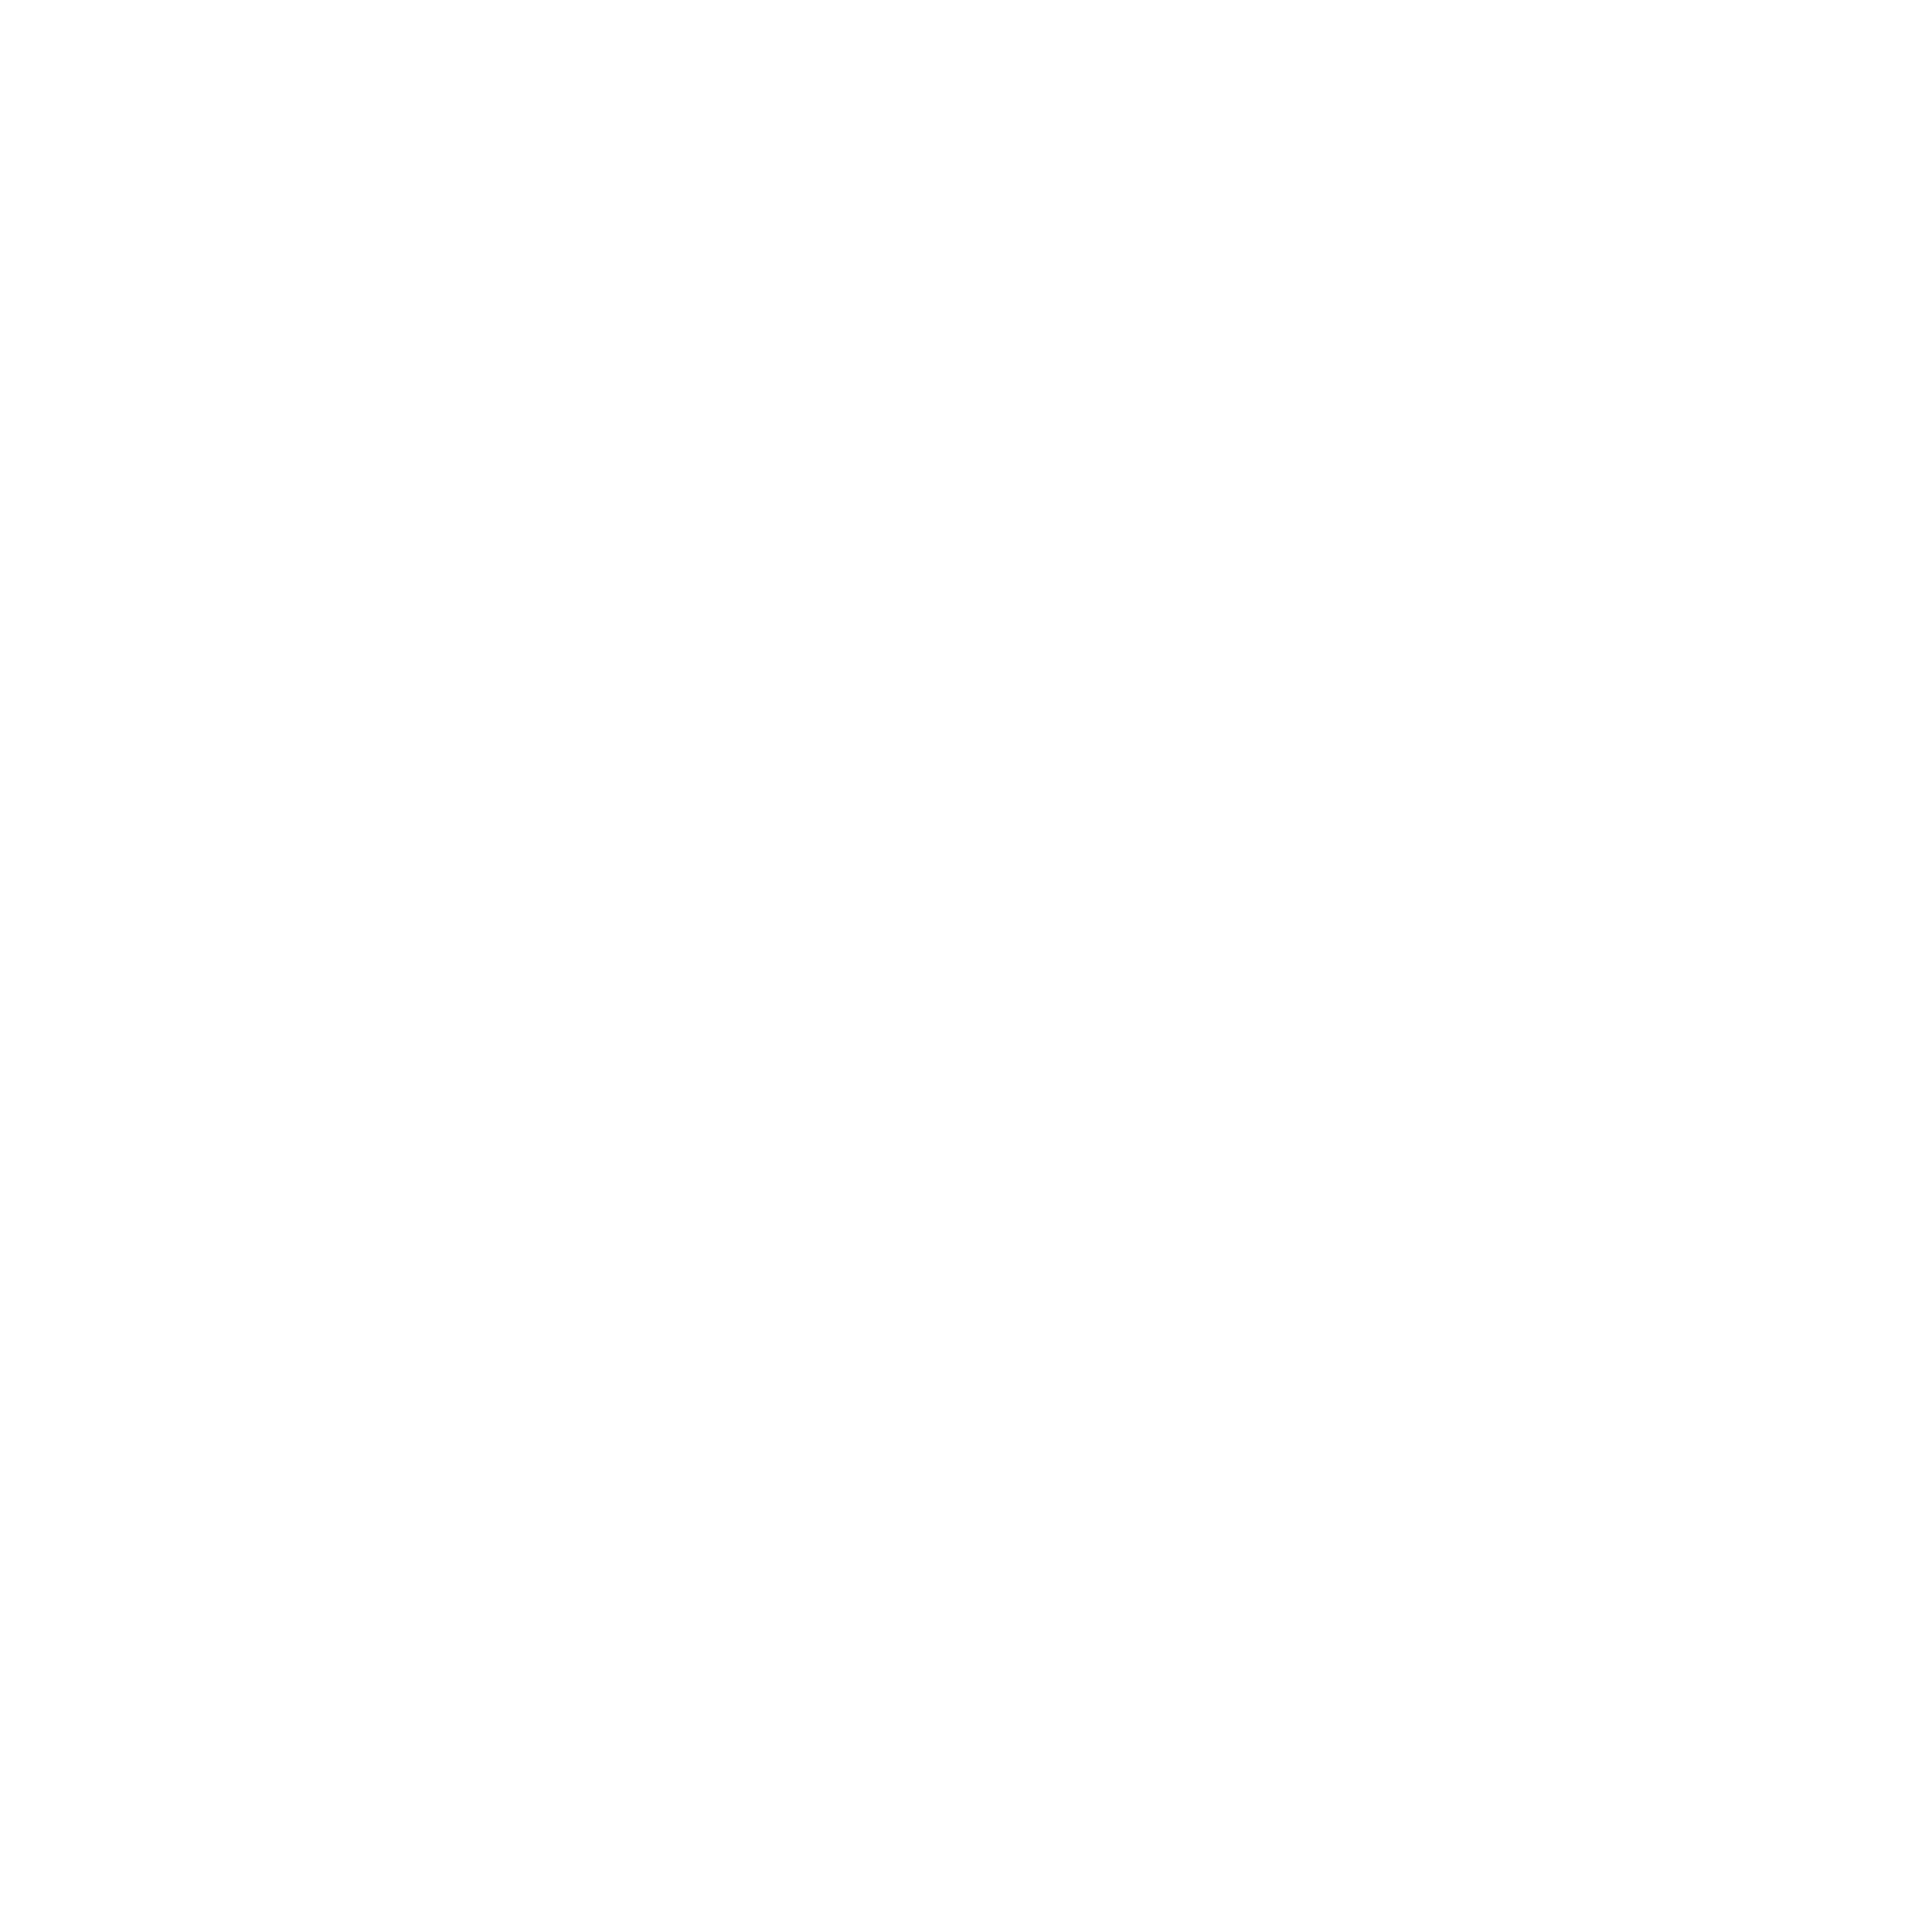 VC Facebook Page